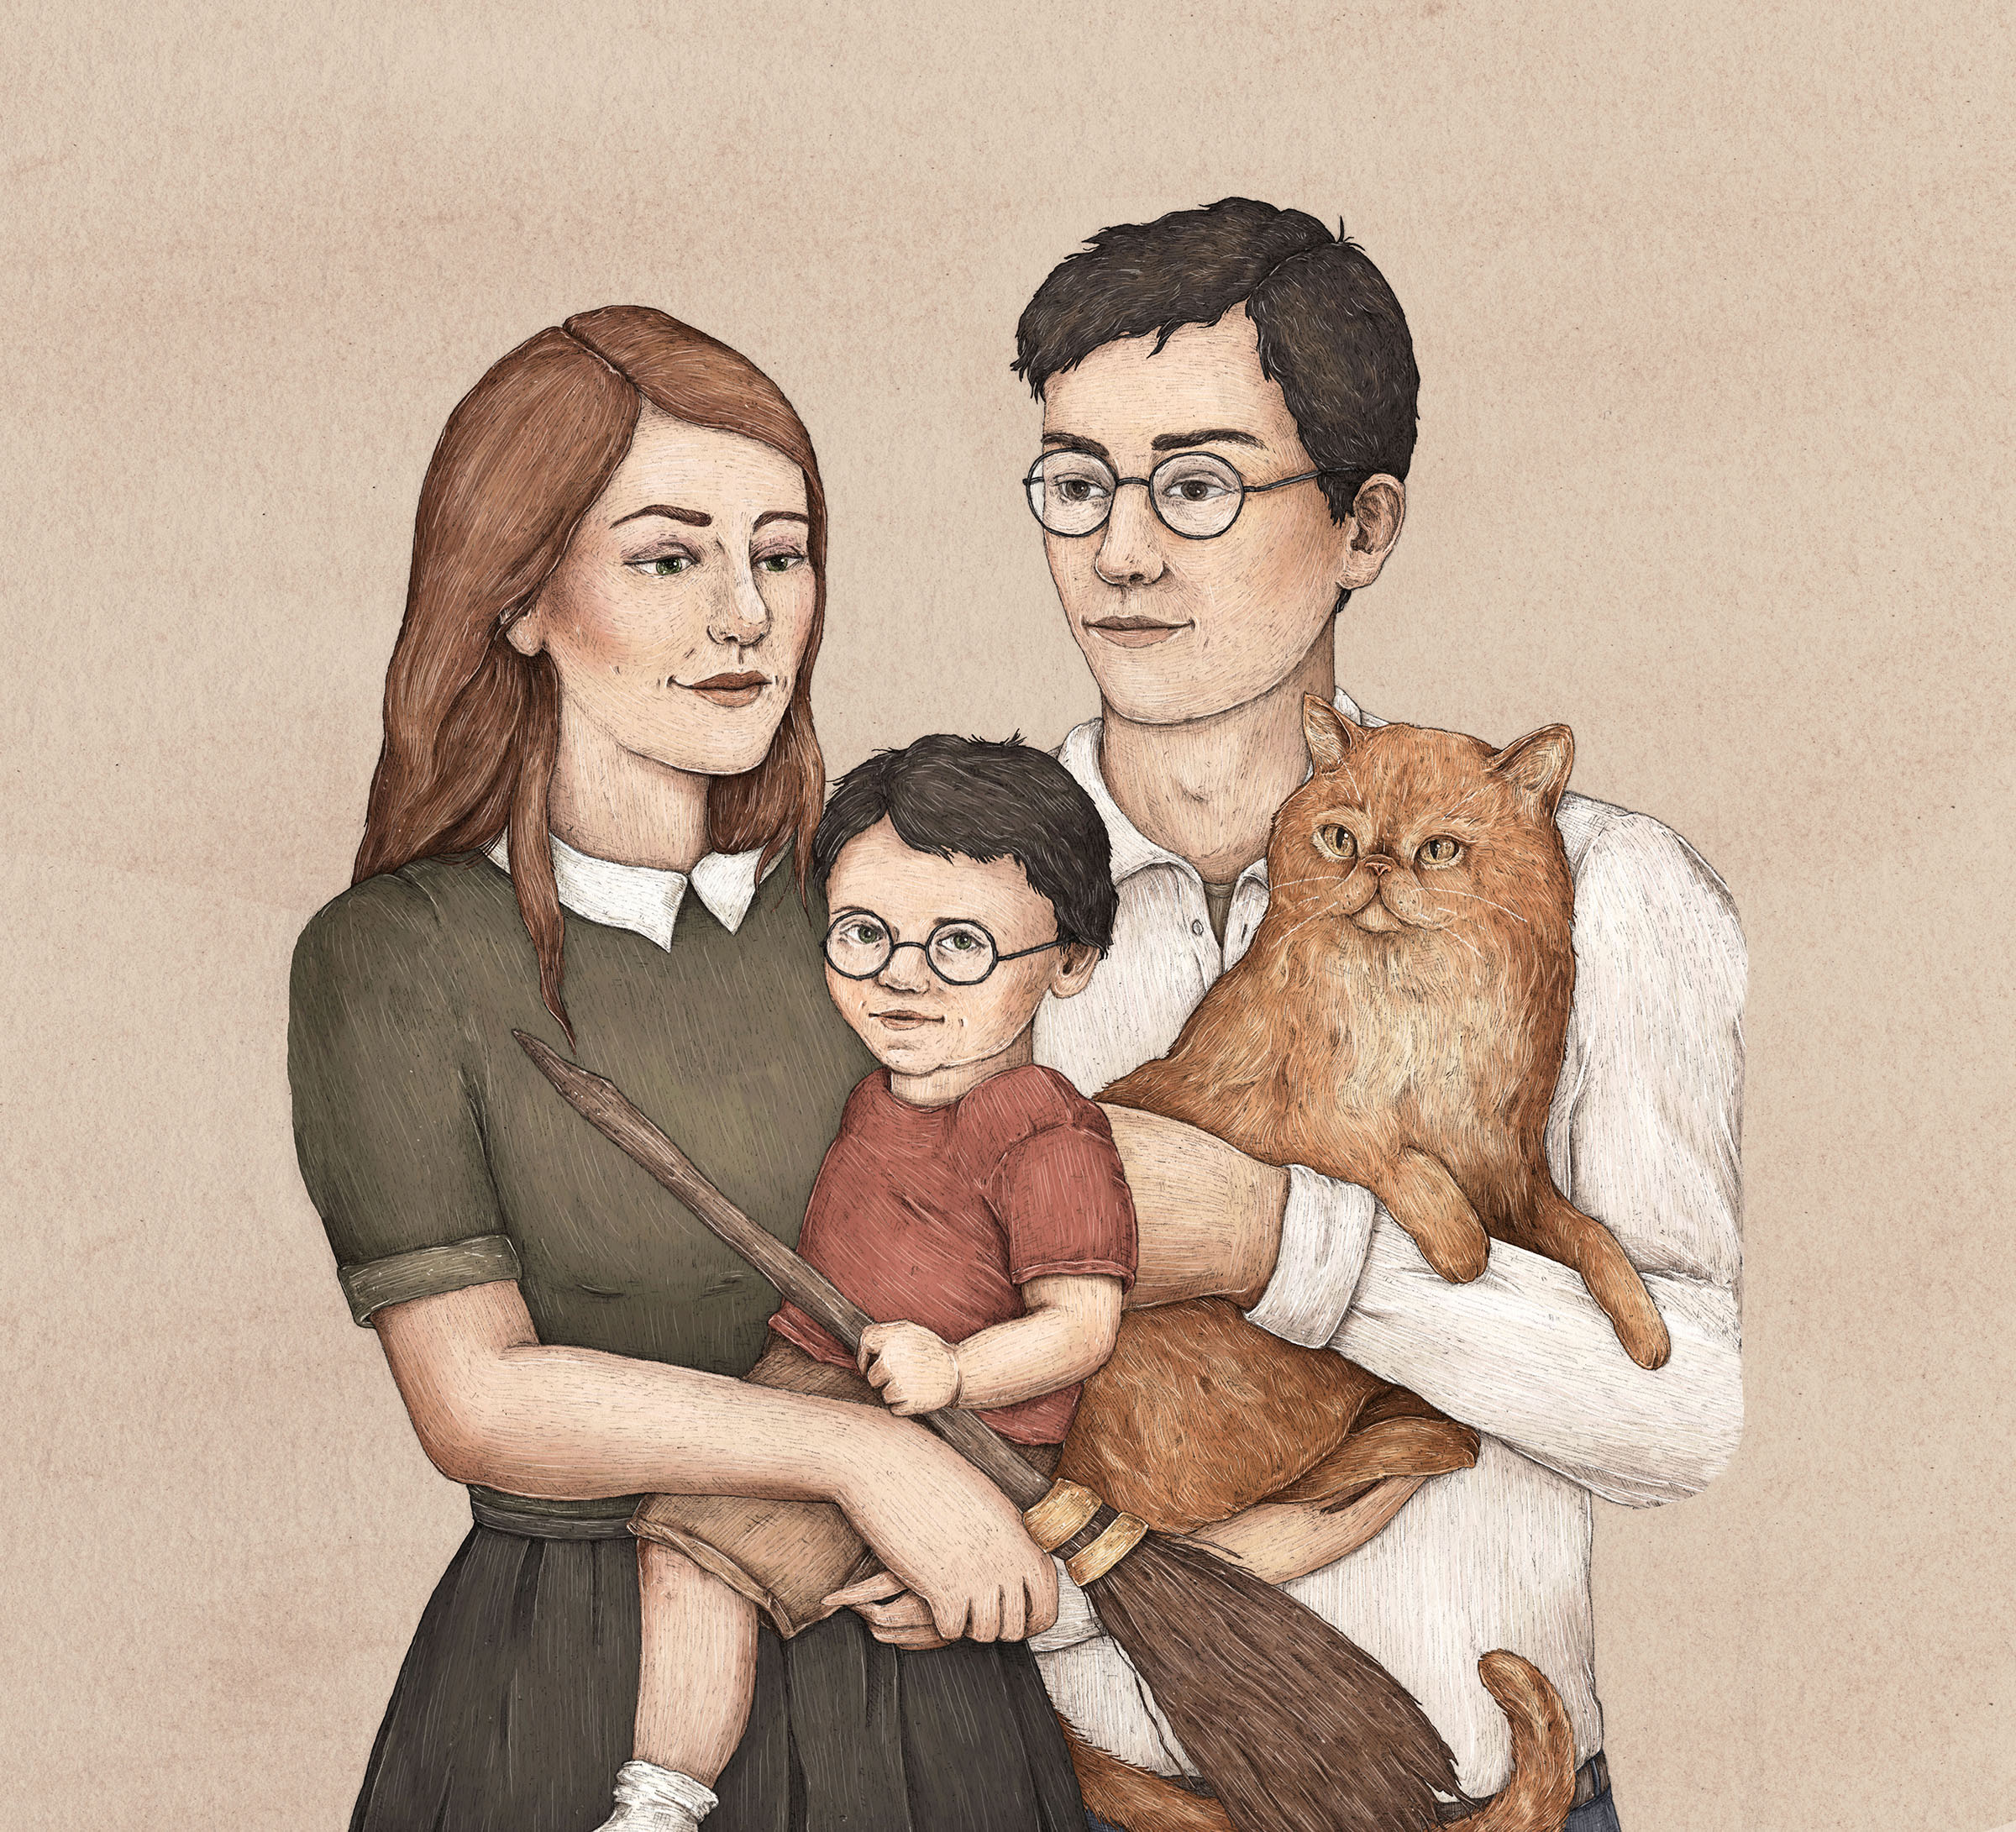 Potter family tree featuring Harry Potter, James Potter and Lily Potter with the family cat